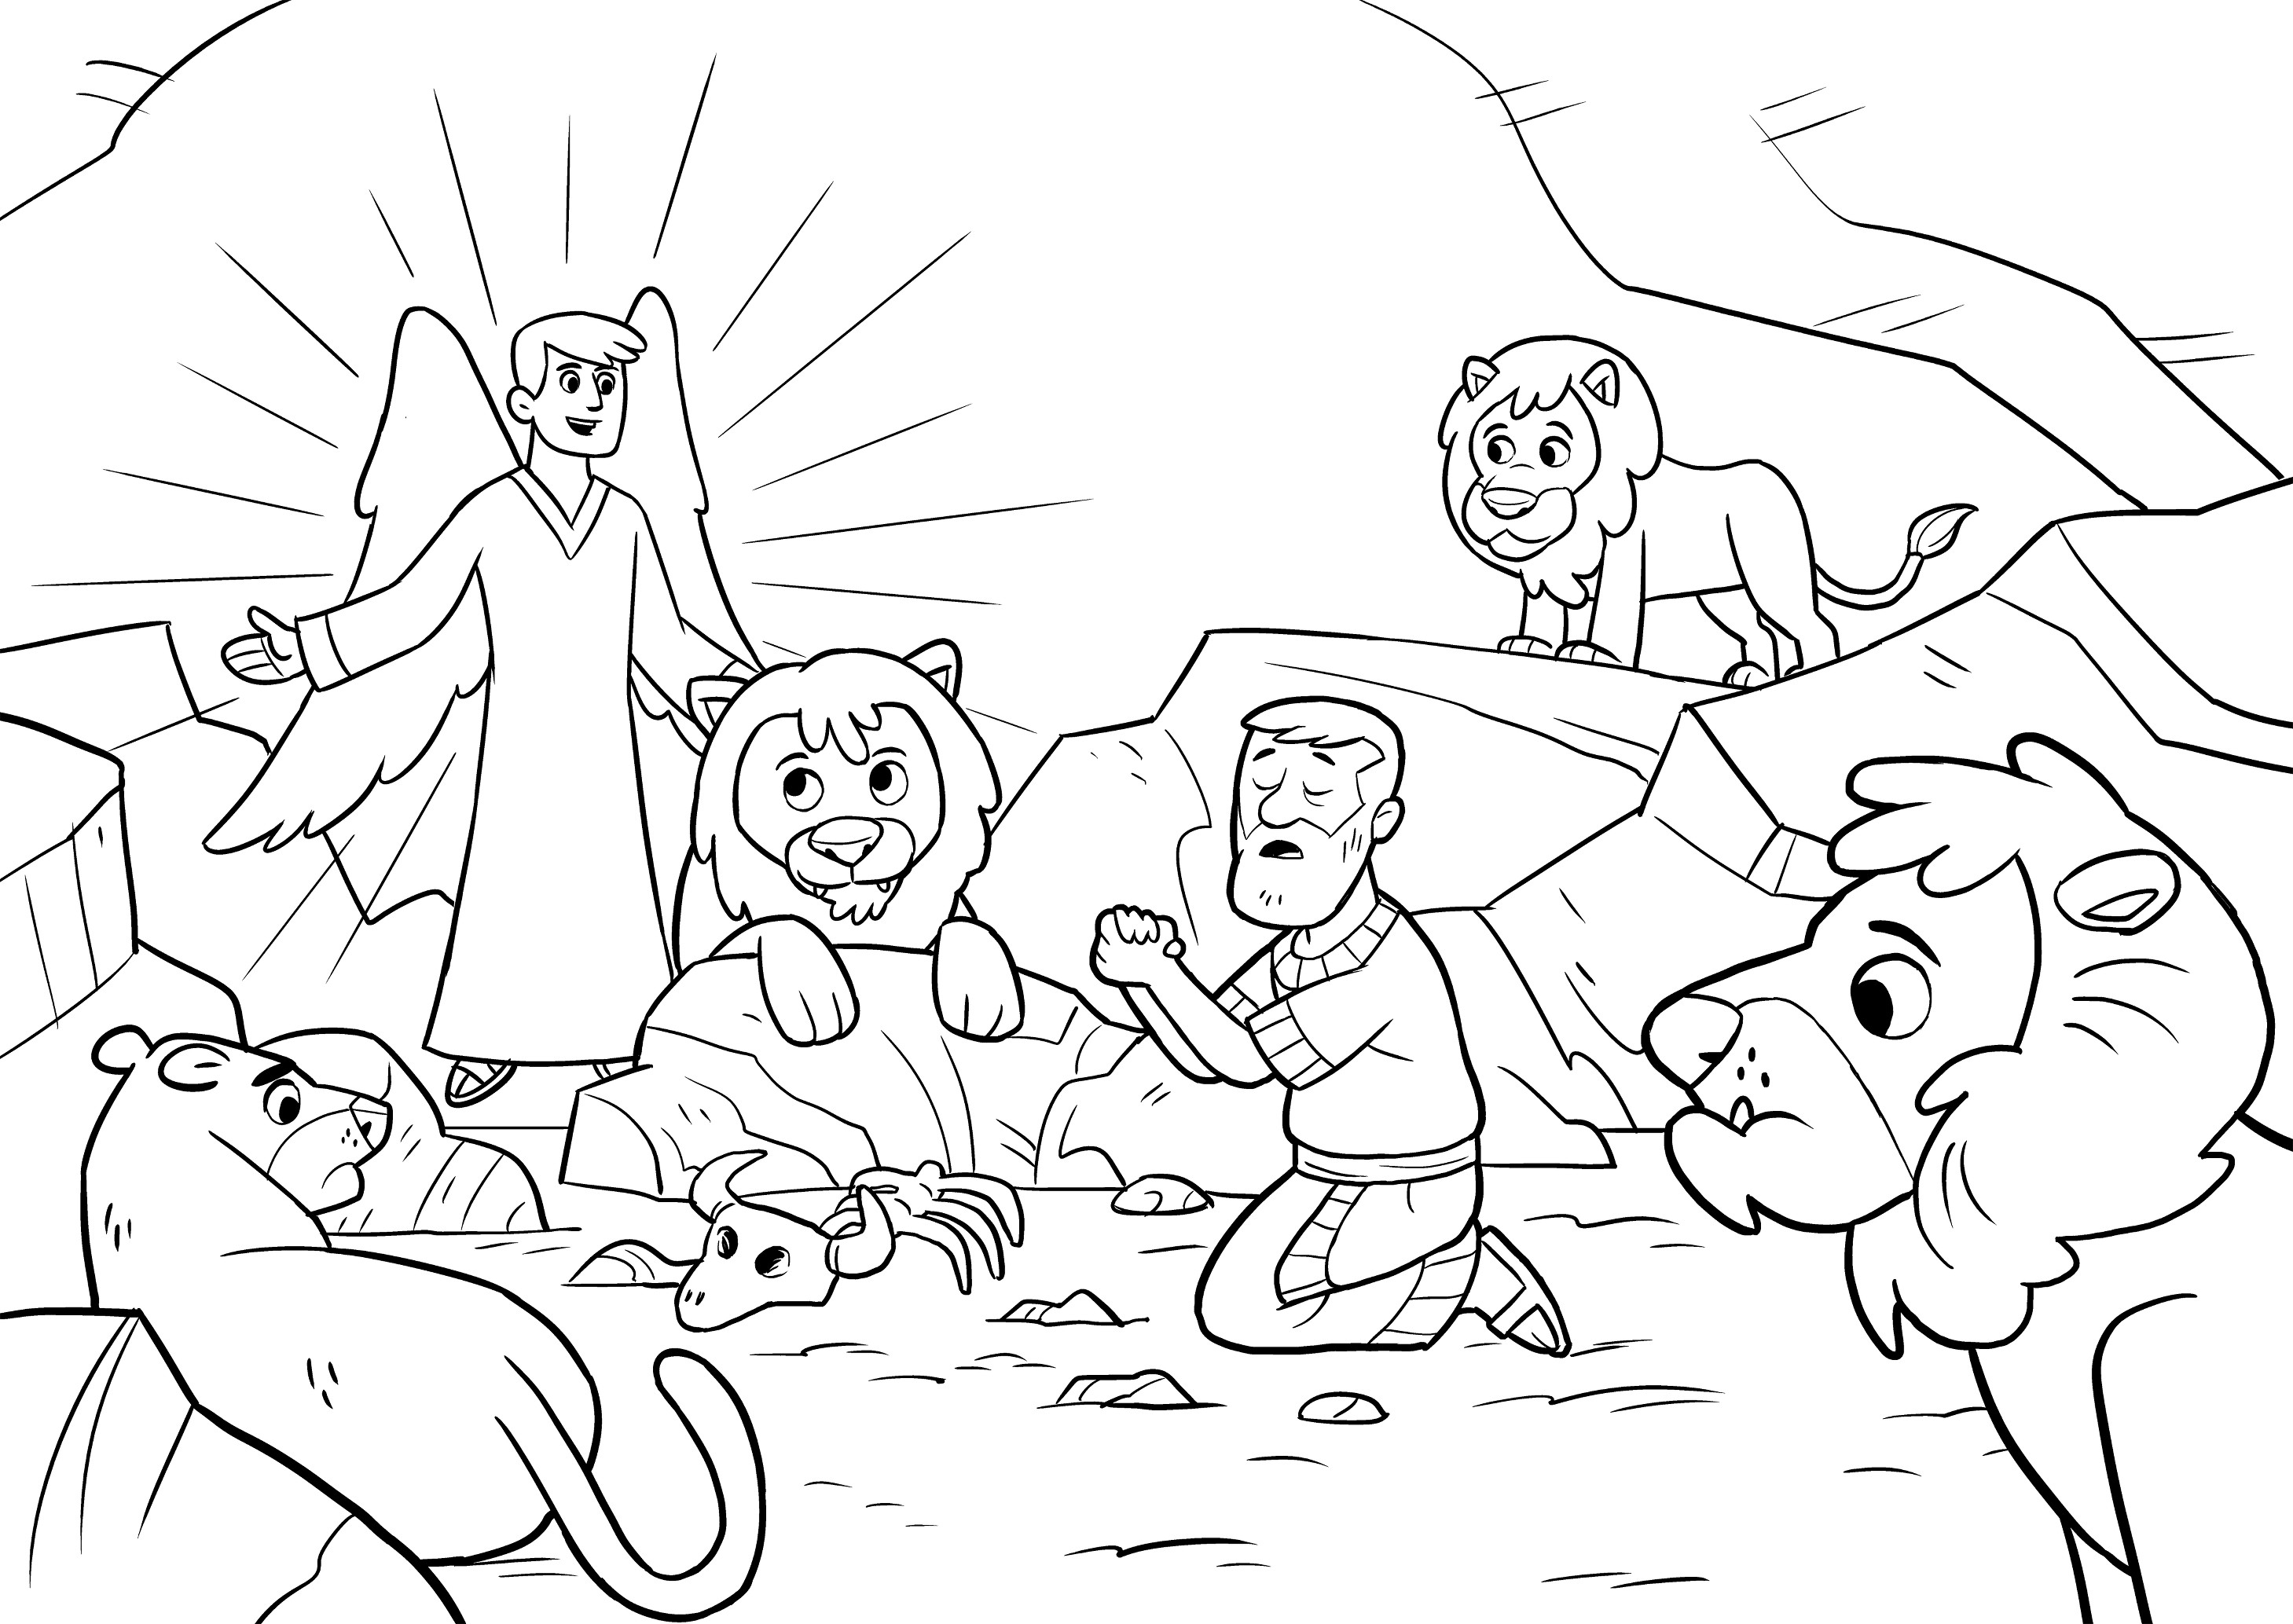 Daniel Coloring Pages Bible  Gallery 4h - To print for your project